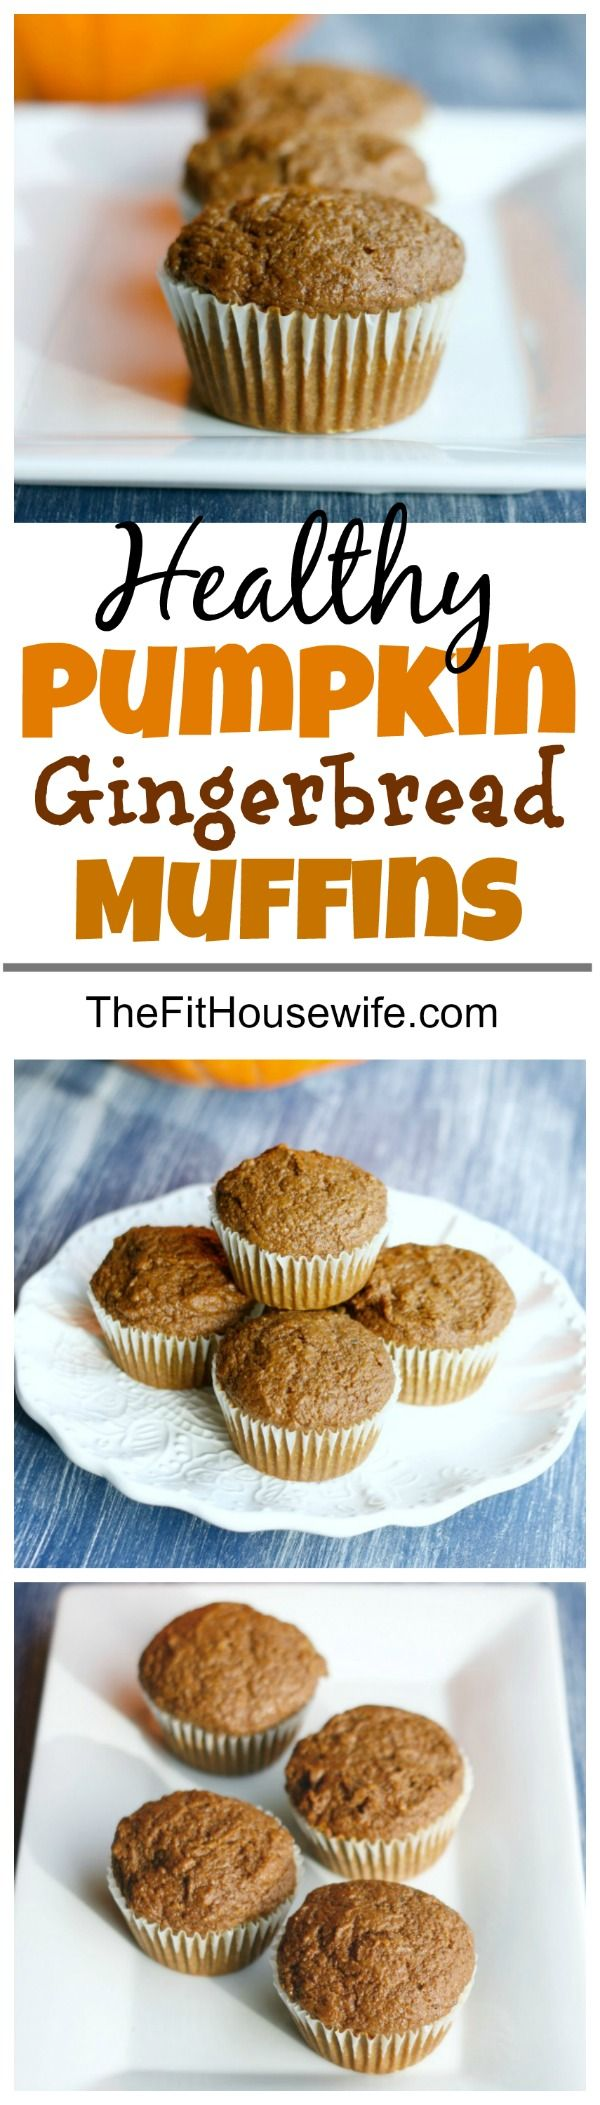 Healthy Pumpkin Gingerbread Muffins. Super moist muffins bursting with flavour and made with clean eating ingredients.